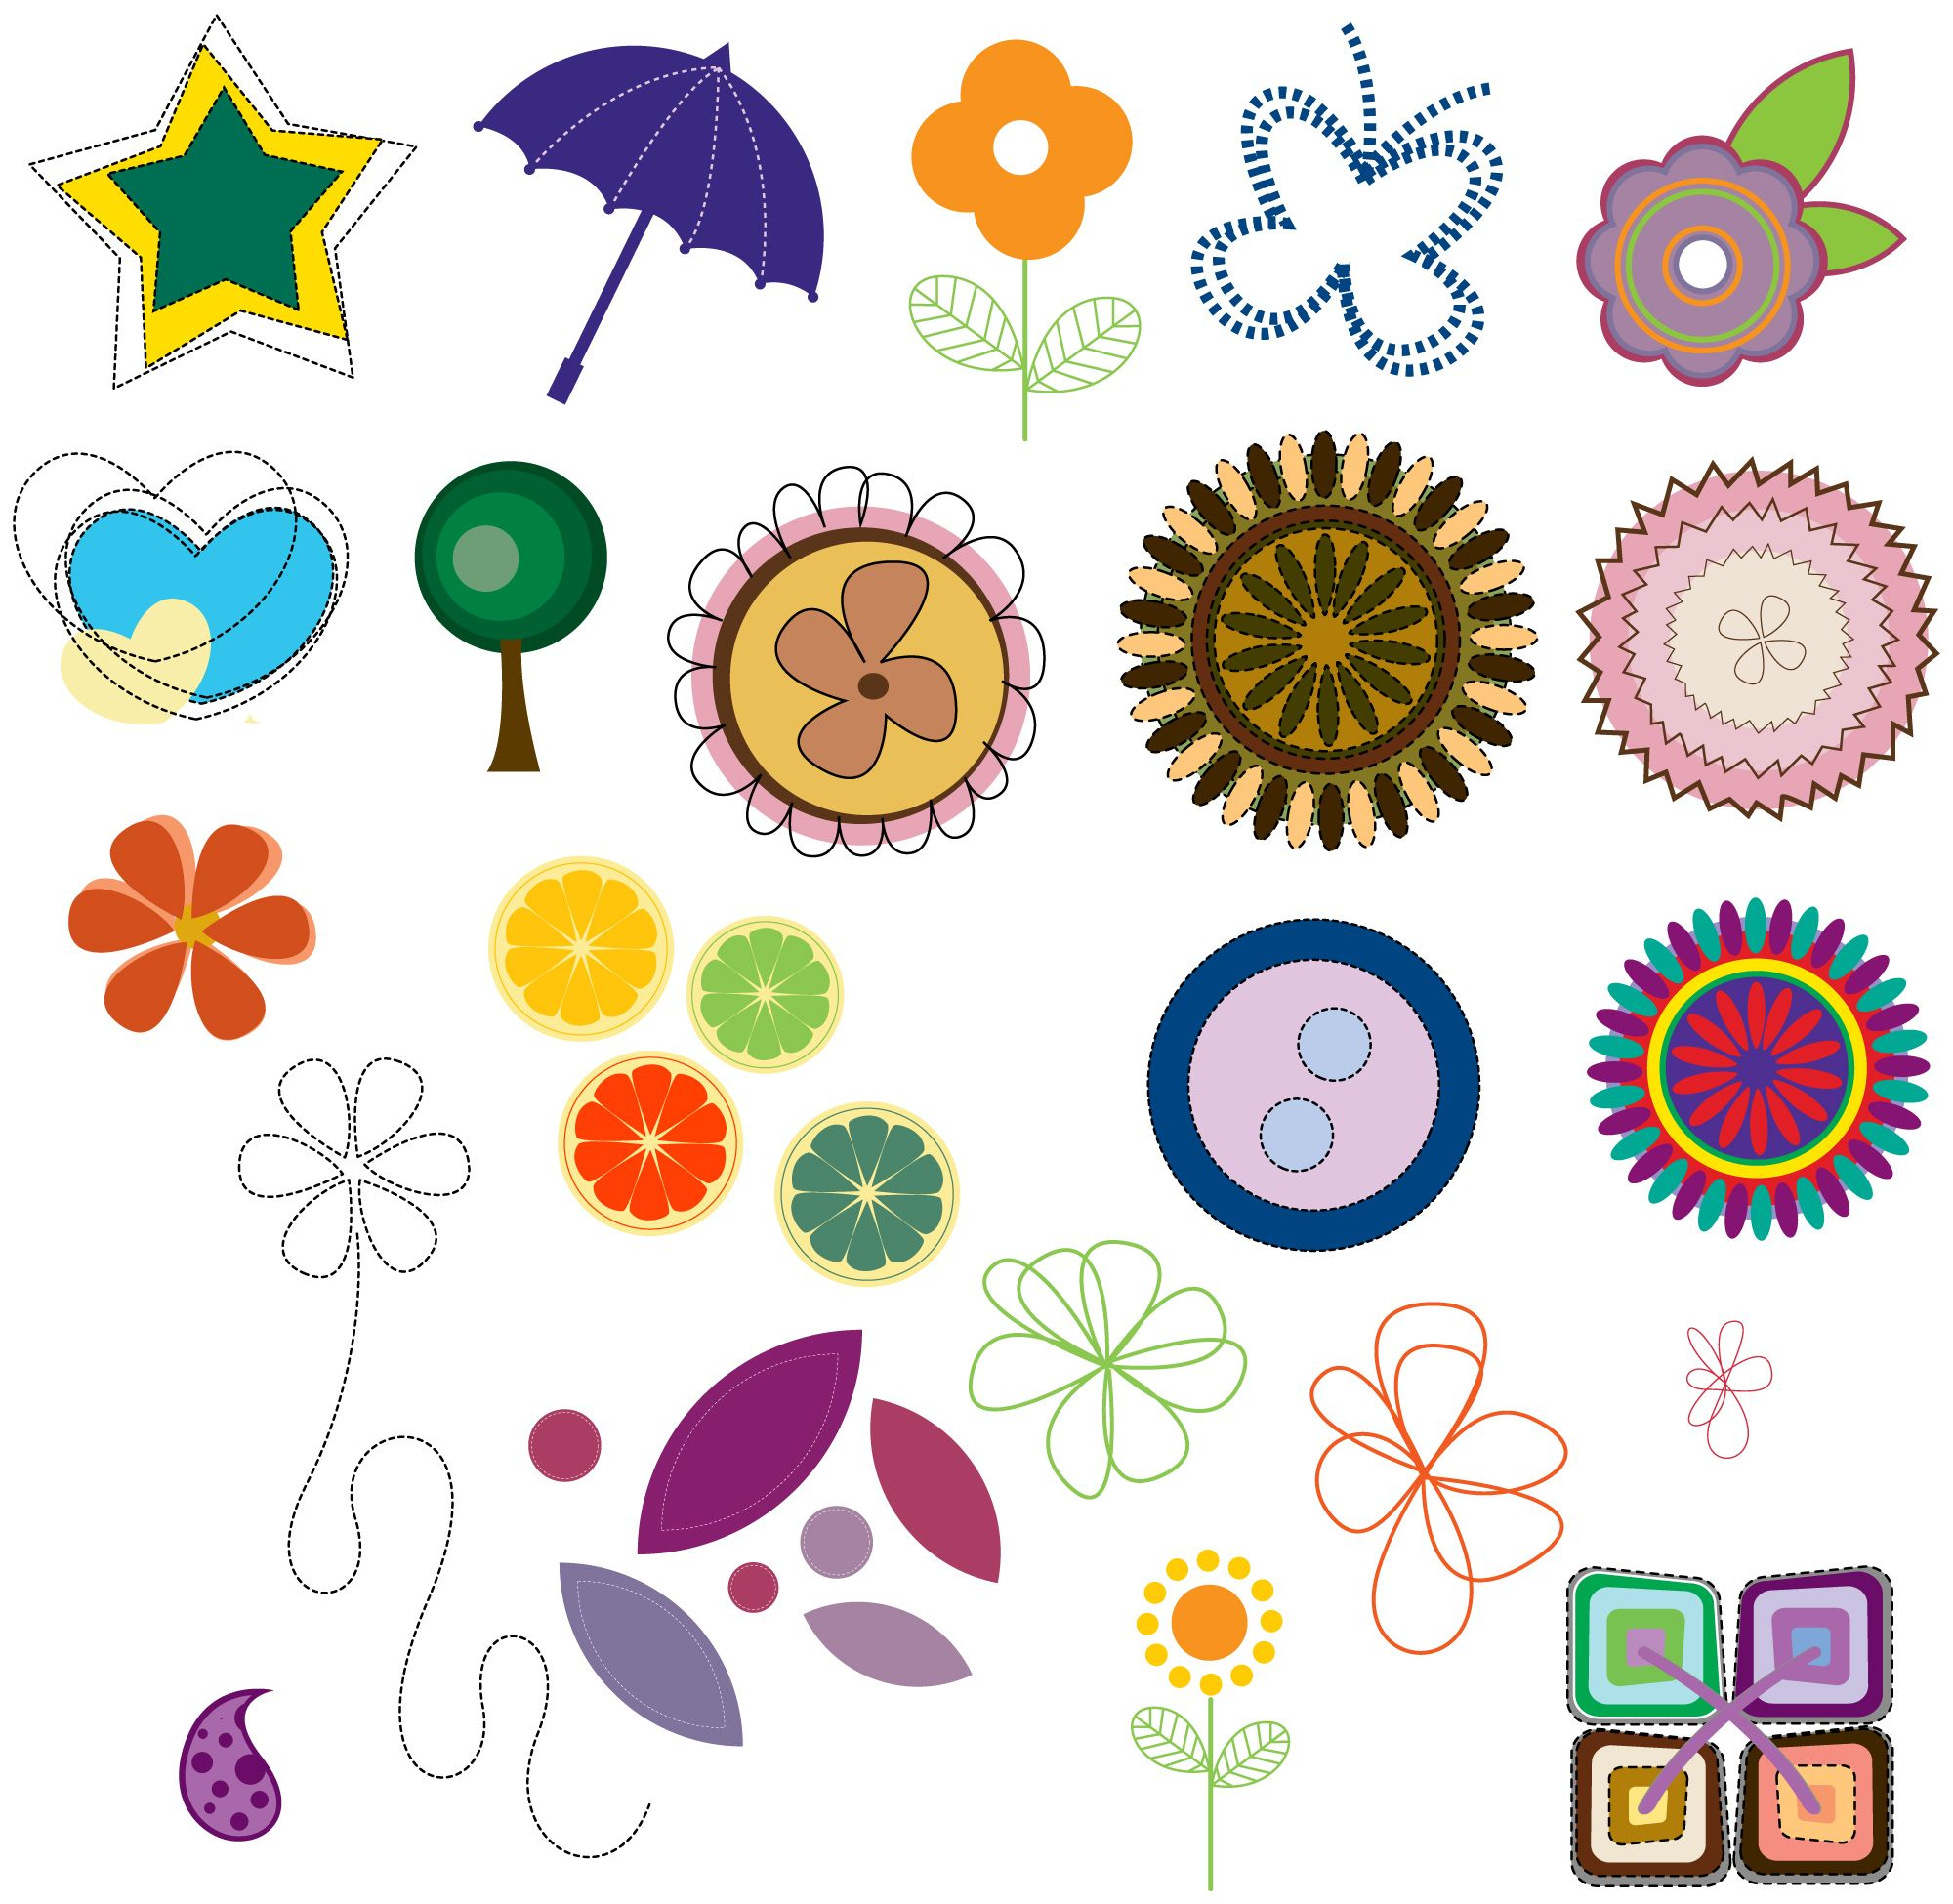 Free Photoshop Scrapbook Elements If Your Looking For Some